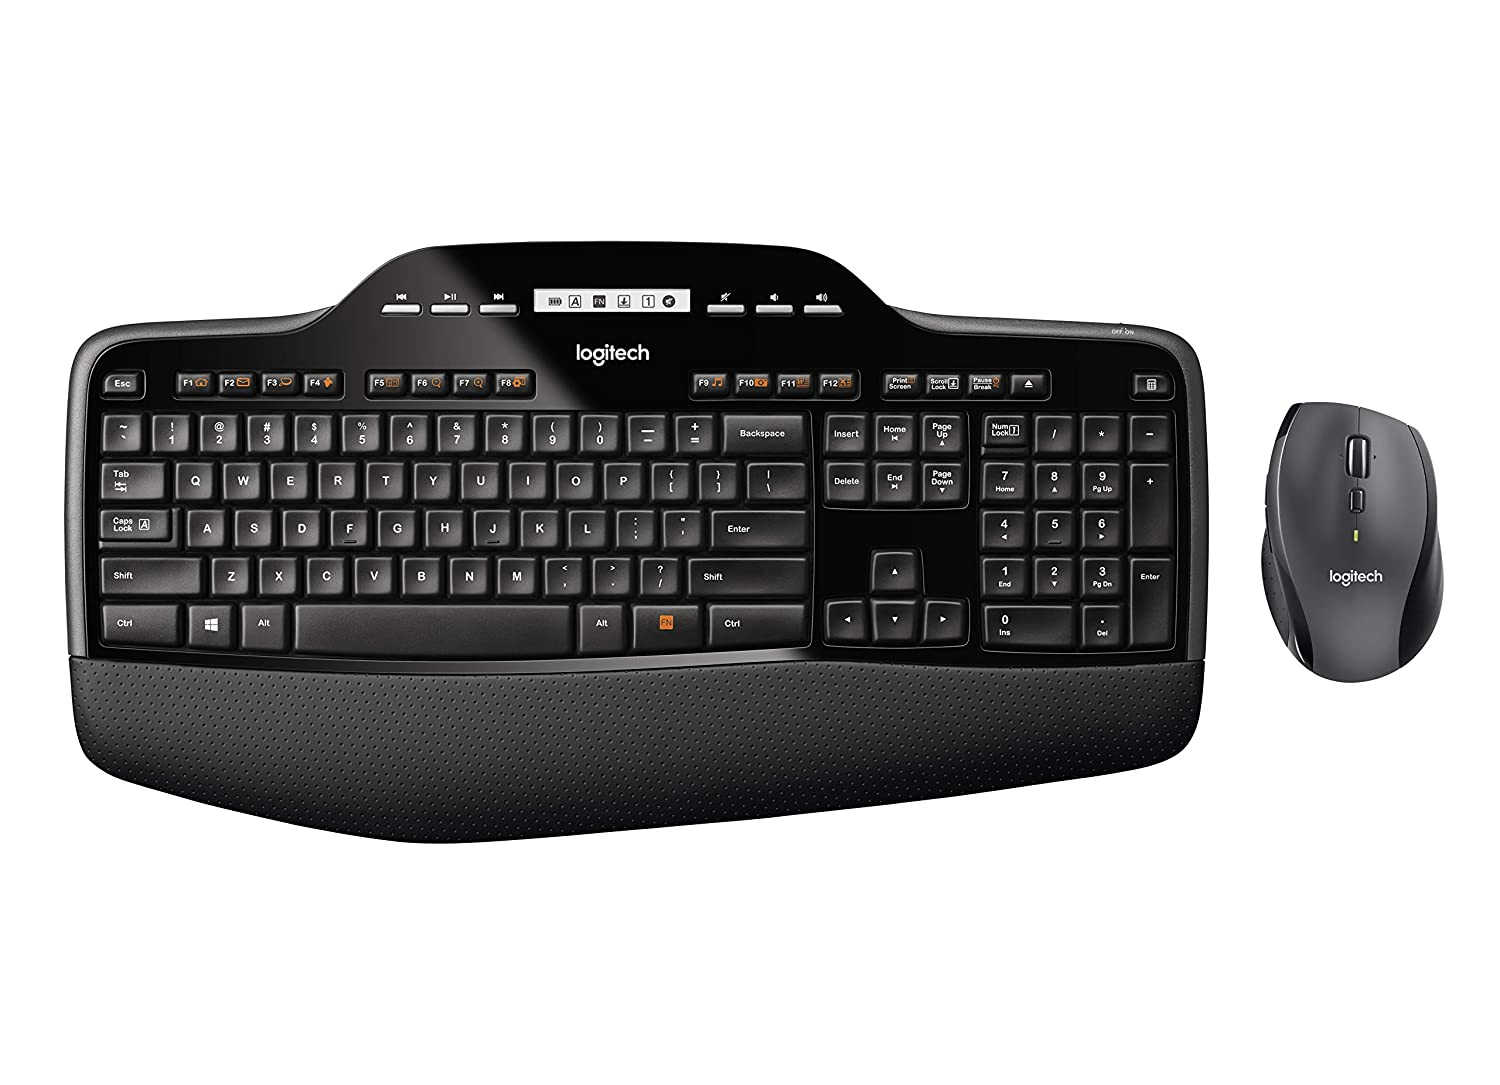 LOGITECH MK710 WINDOWS 7 64BIT DRIVER DOWNLOAD